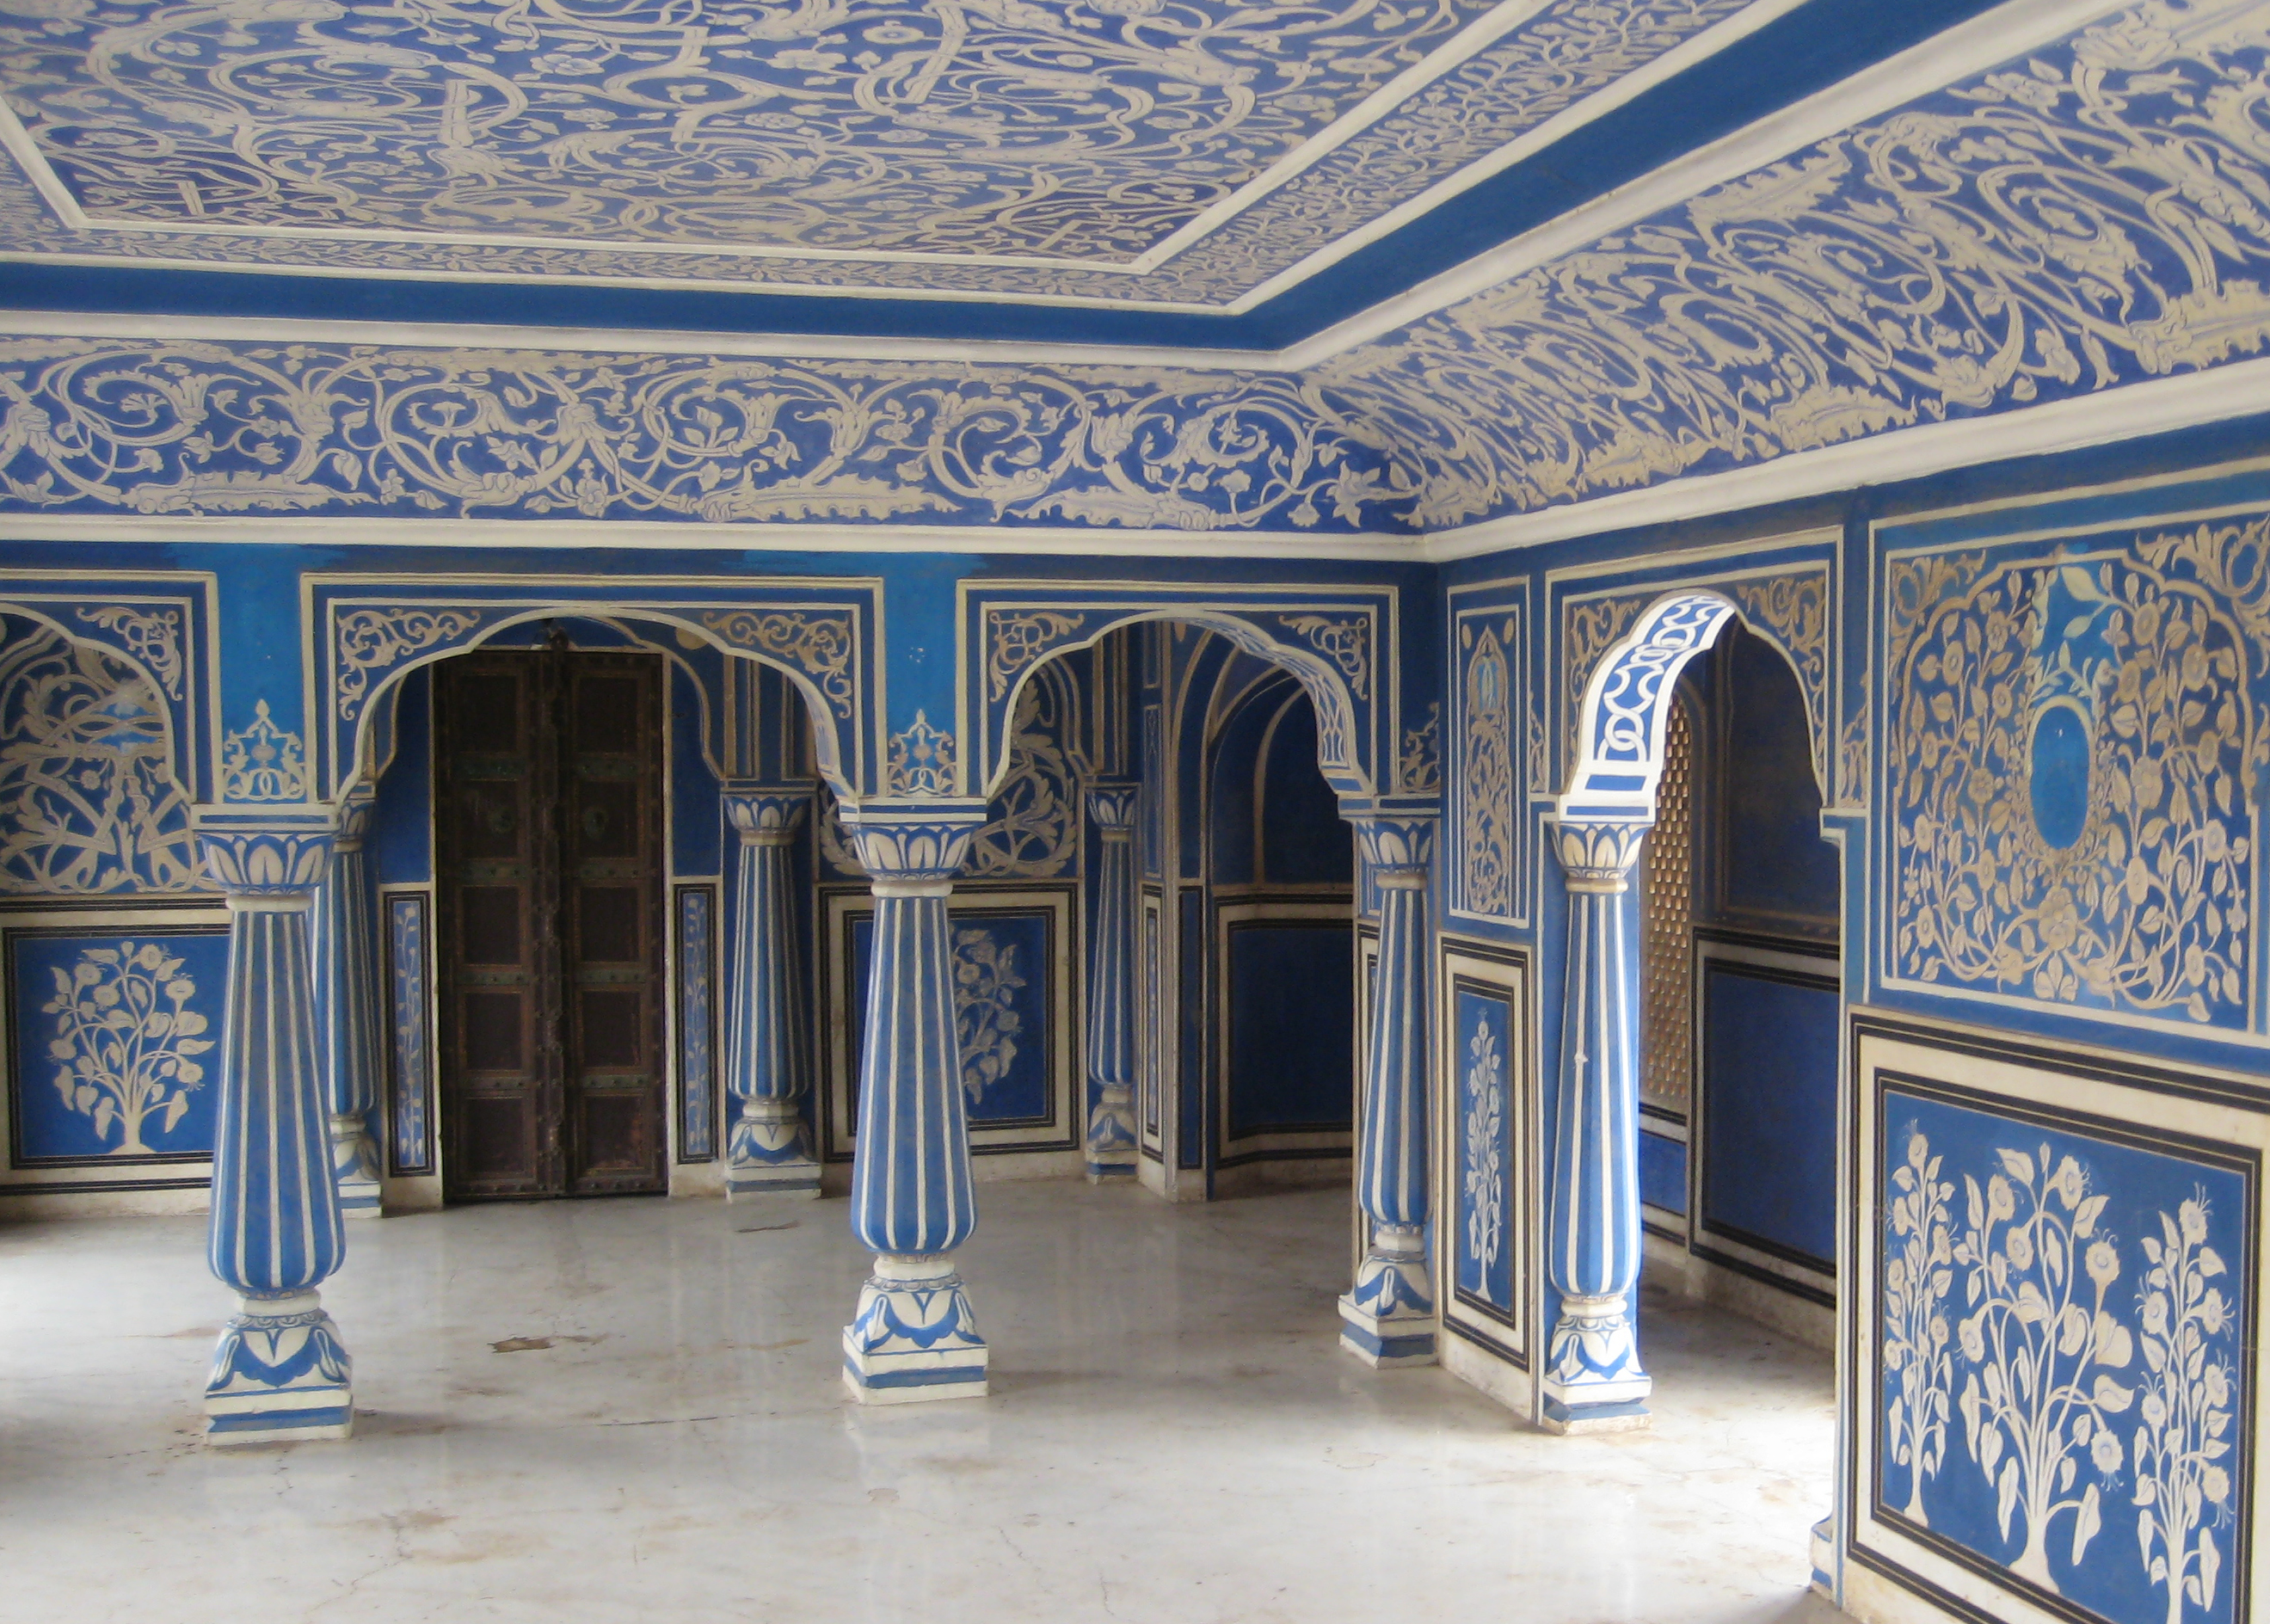 Images of Ancient Indian Architecture - #rock-cafe